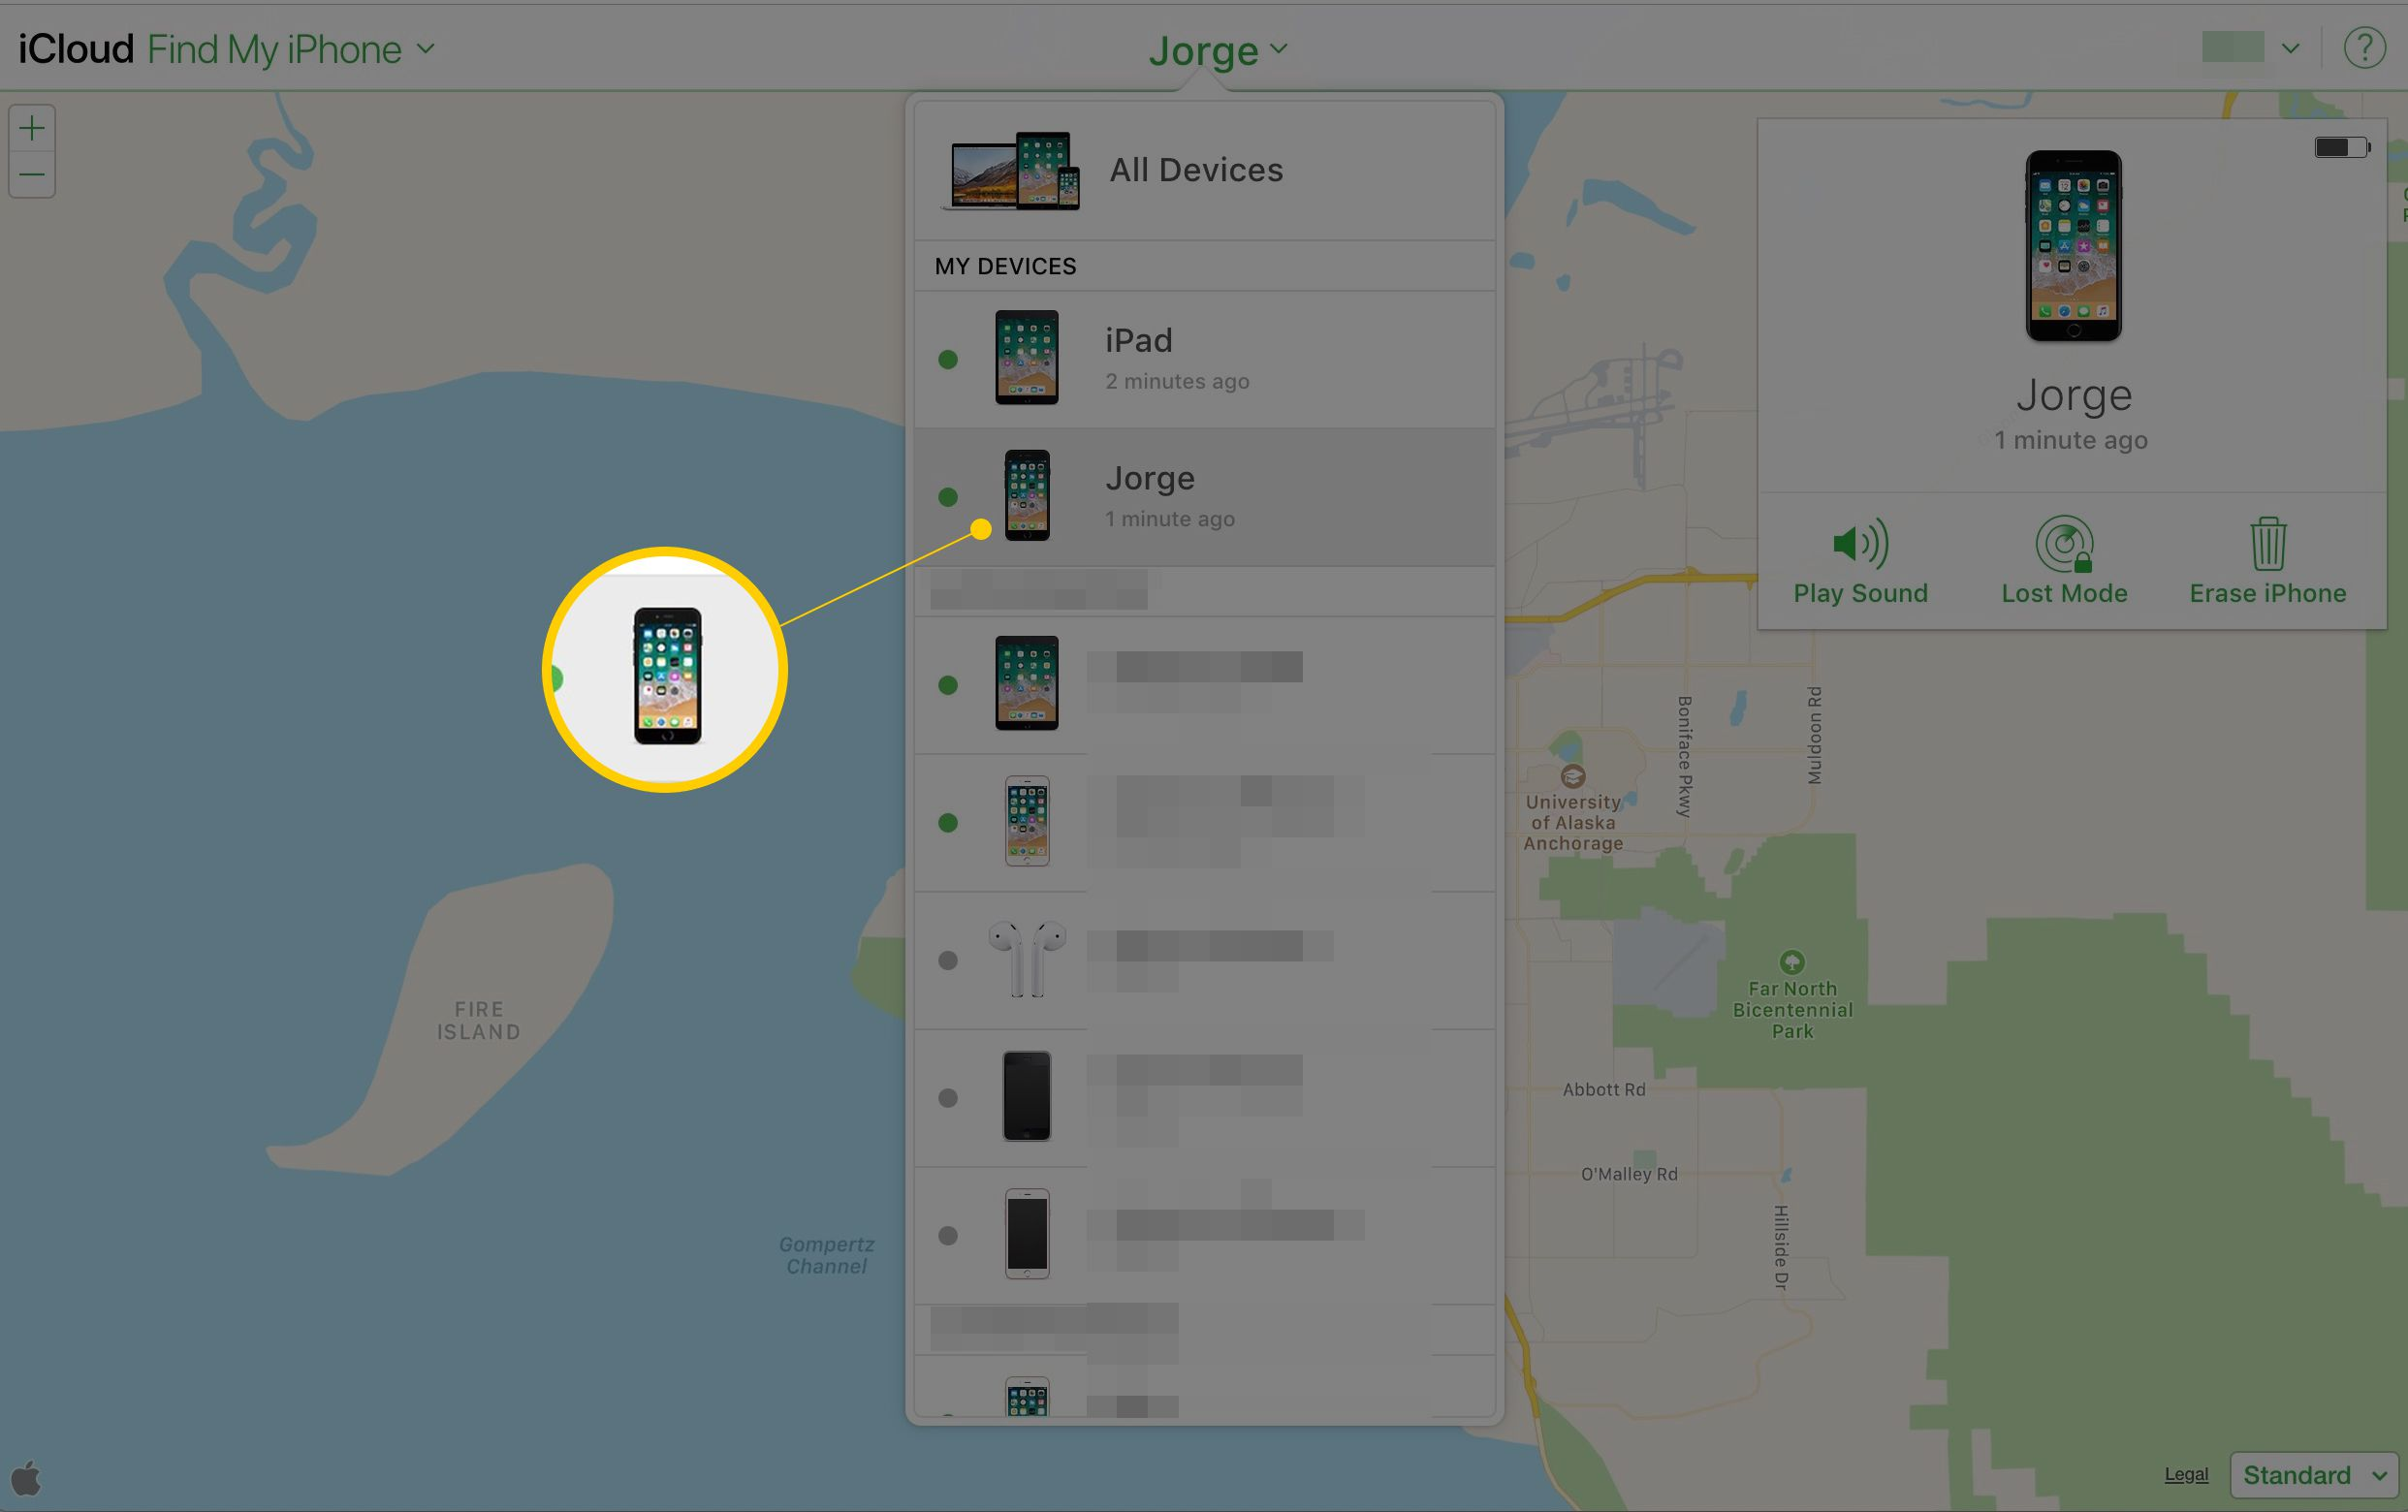 Screenshot of All Devices shown on iCloud.com map